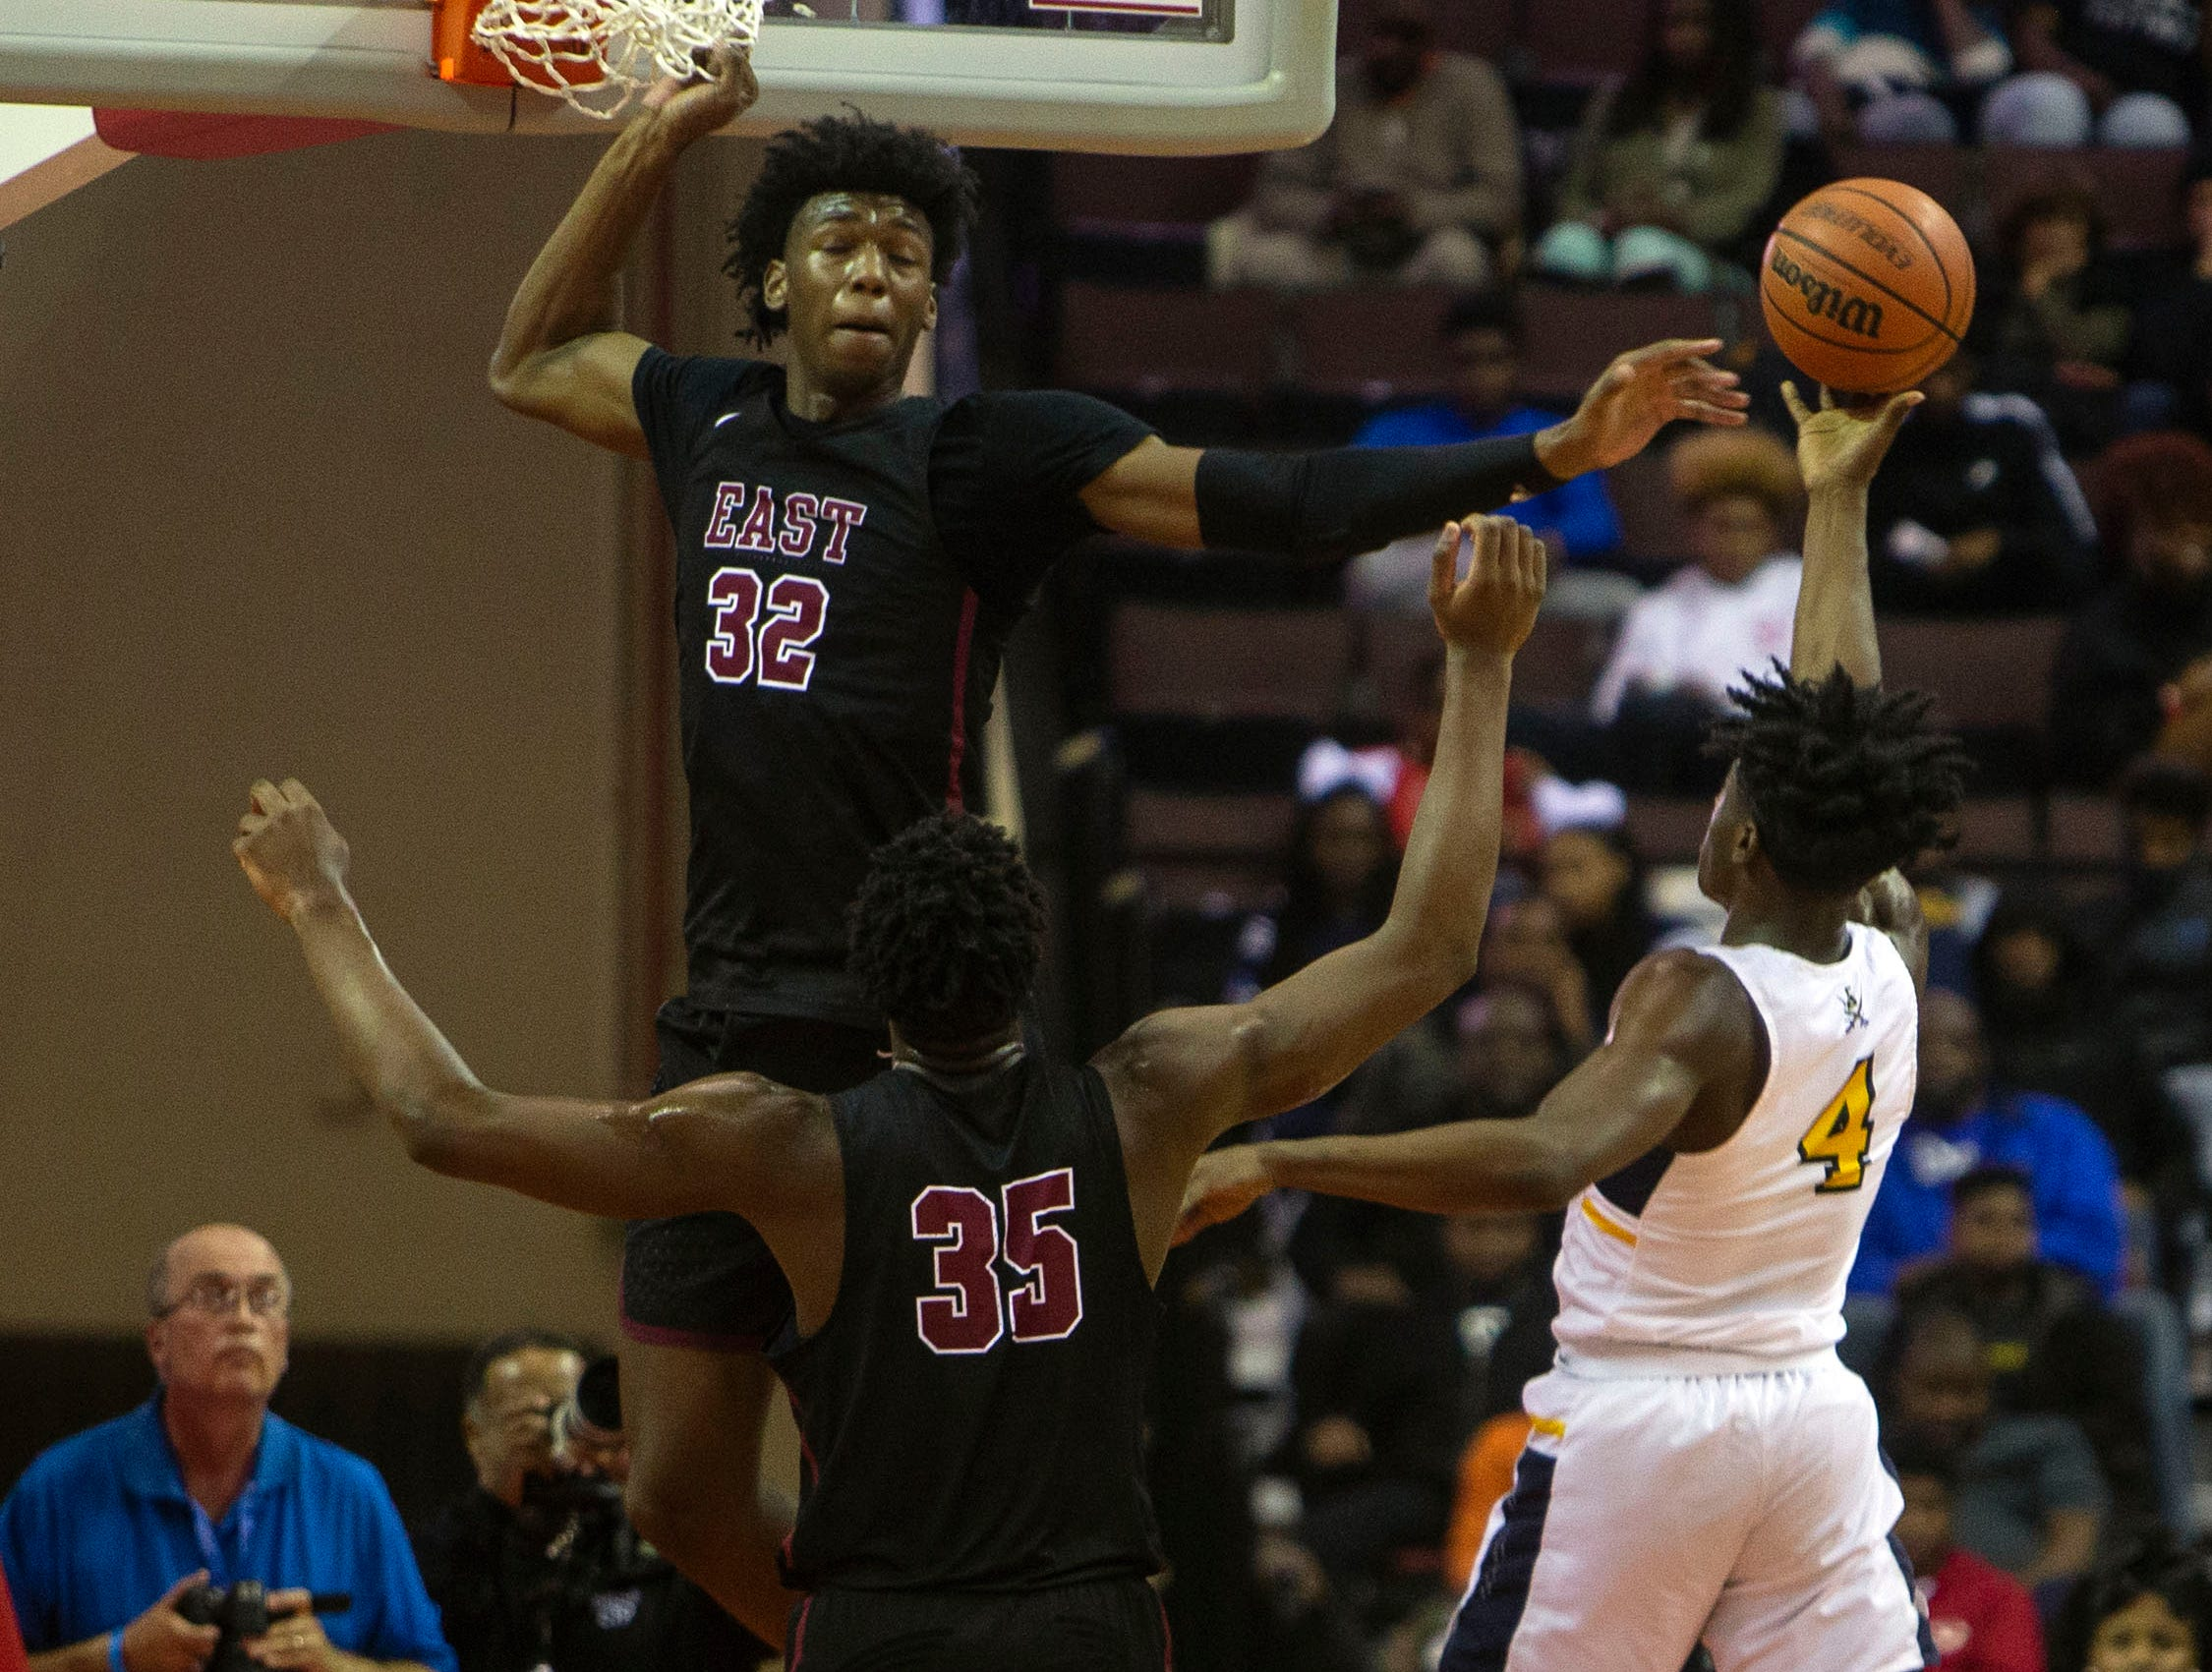 East Memphis Mustangs forward James Wiseman (32) blocks a shot attempt by  Olive Branch Conquistadors forward Cameron Matthews (4) during the first half of the Mid-South Basketball Classic basketball game Tuesday, Nov. 20, 2018, in Southaven, Miss.